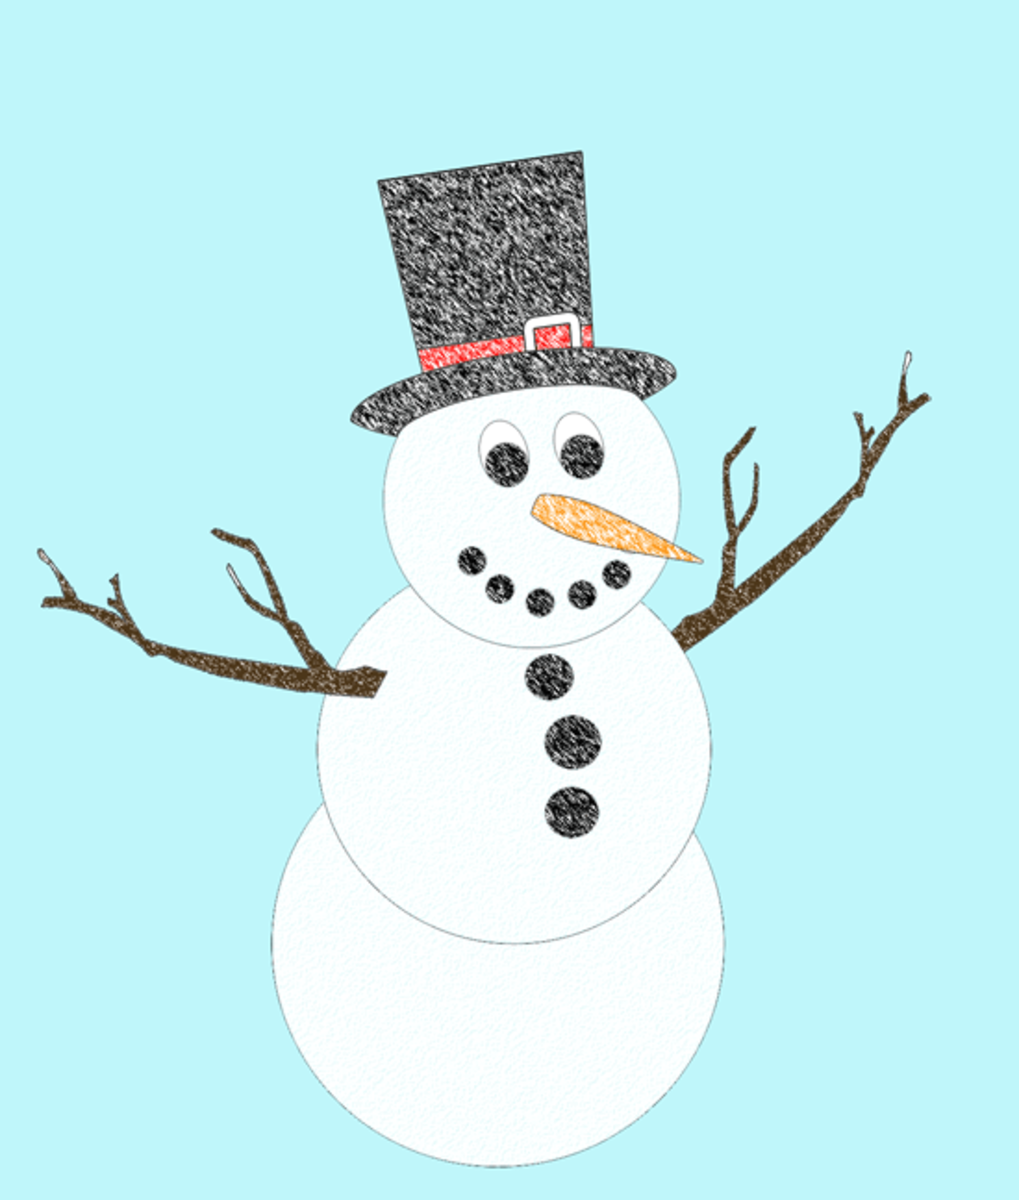 Snowman Craft - - Print out images below to create this snowman!